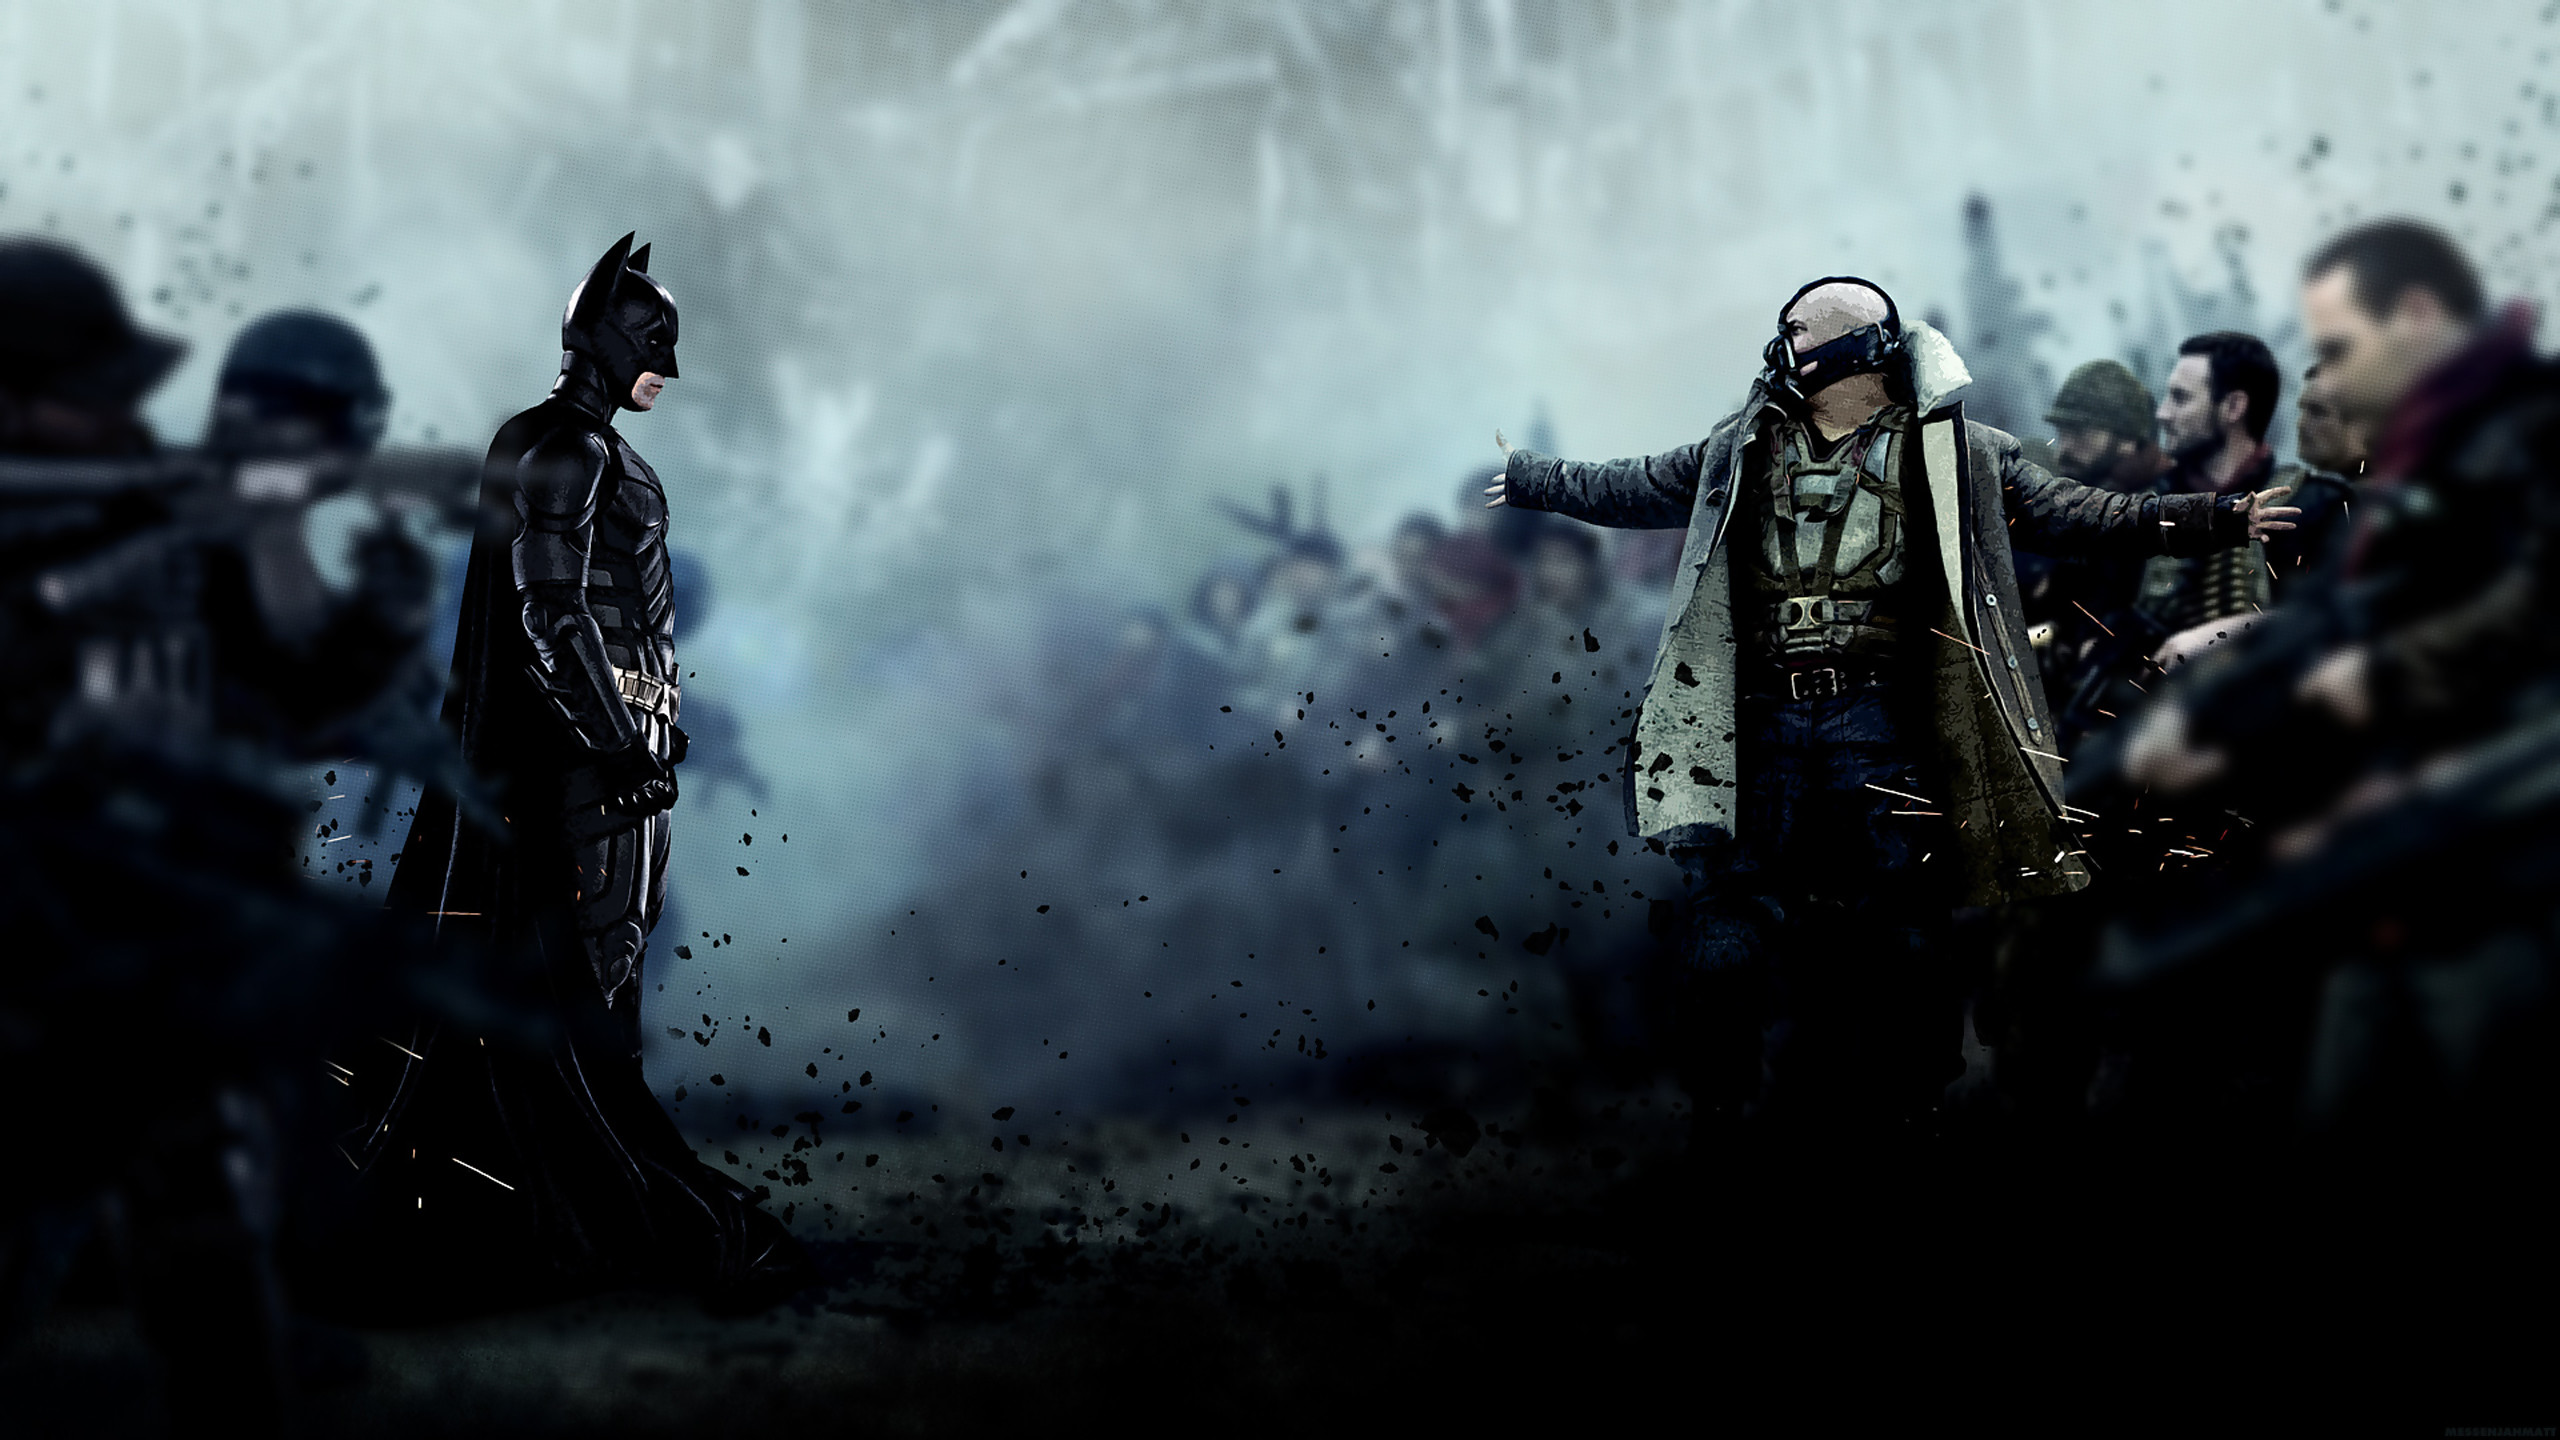 2560x1440 Wallpaper: Bane vs Batman / The Dark Knight Rises